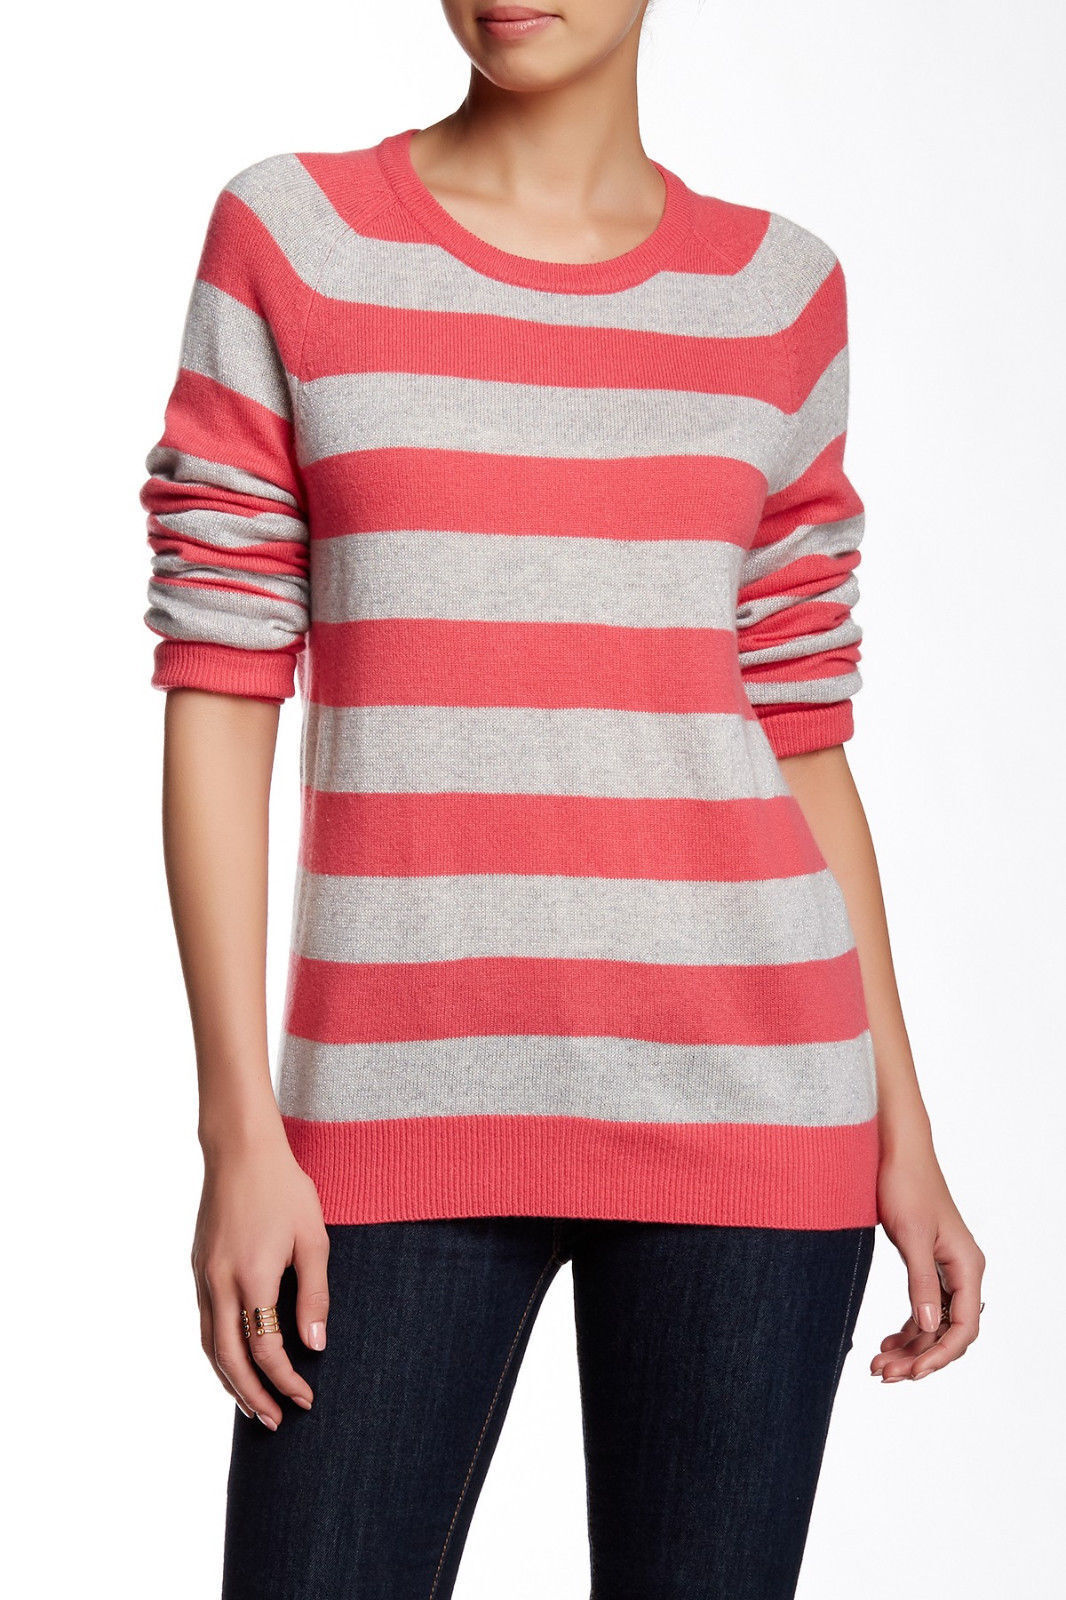 Equipment Femme Sloane 100% Cashmere Pink Pink Pink Metallic Striped Sweater NWT  M 1672dc